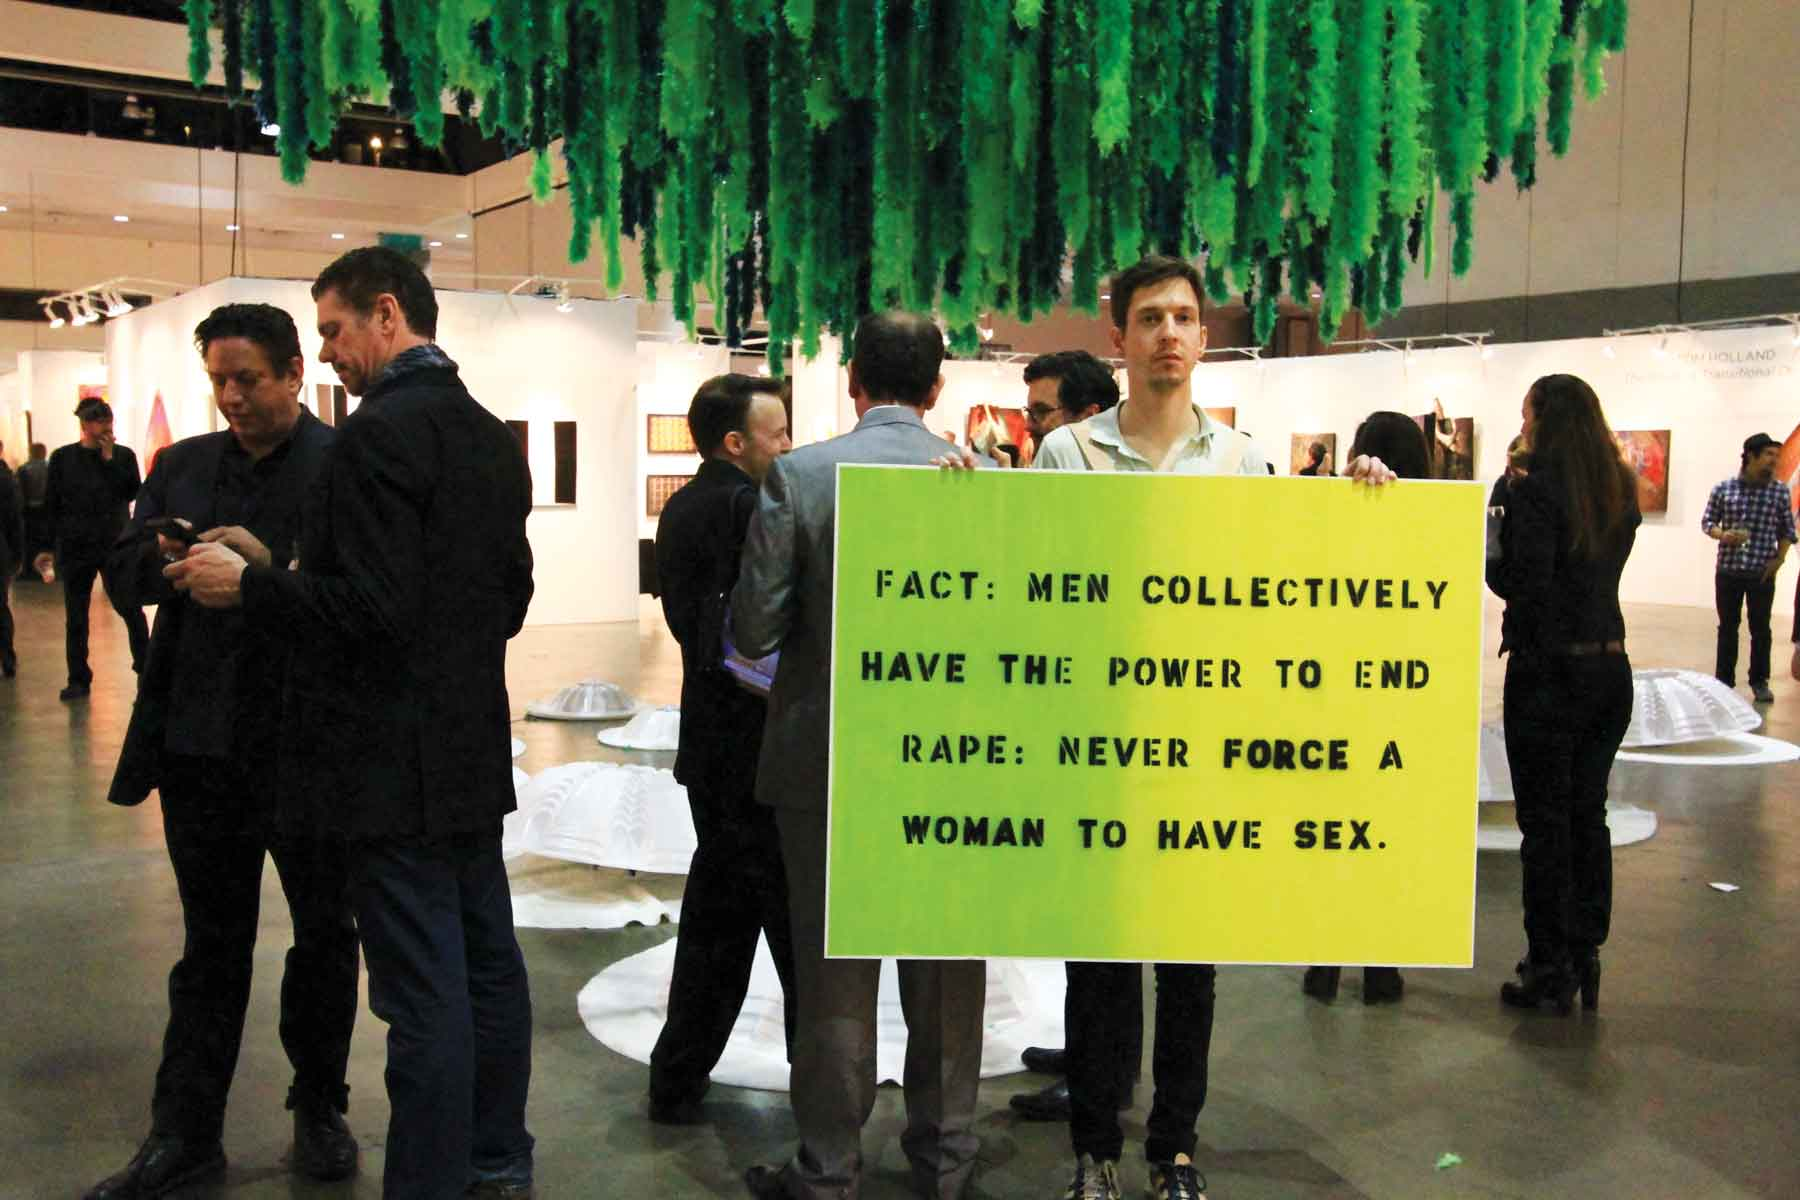 Myths of Rape, 2012, performance by Audrey Chan and Elana Mann, a reinterpretation of Leslie Labowitz-Starus' Myths of Rape (1977), part of Suzanne Lacy's Three Weeks in May (1977). This production was presented by Los Angeles Contemporary Exhibitions (LACE) for Three Weeks in January (2012) as part of the Getty Pacific Standard Time Performance Festival. Photos Neda Moridpour.